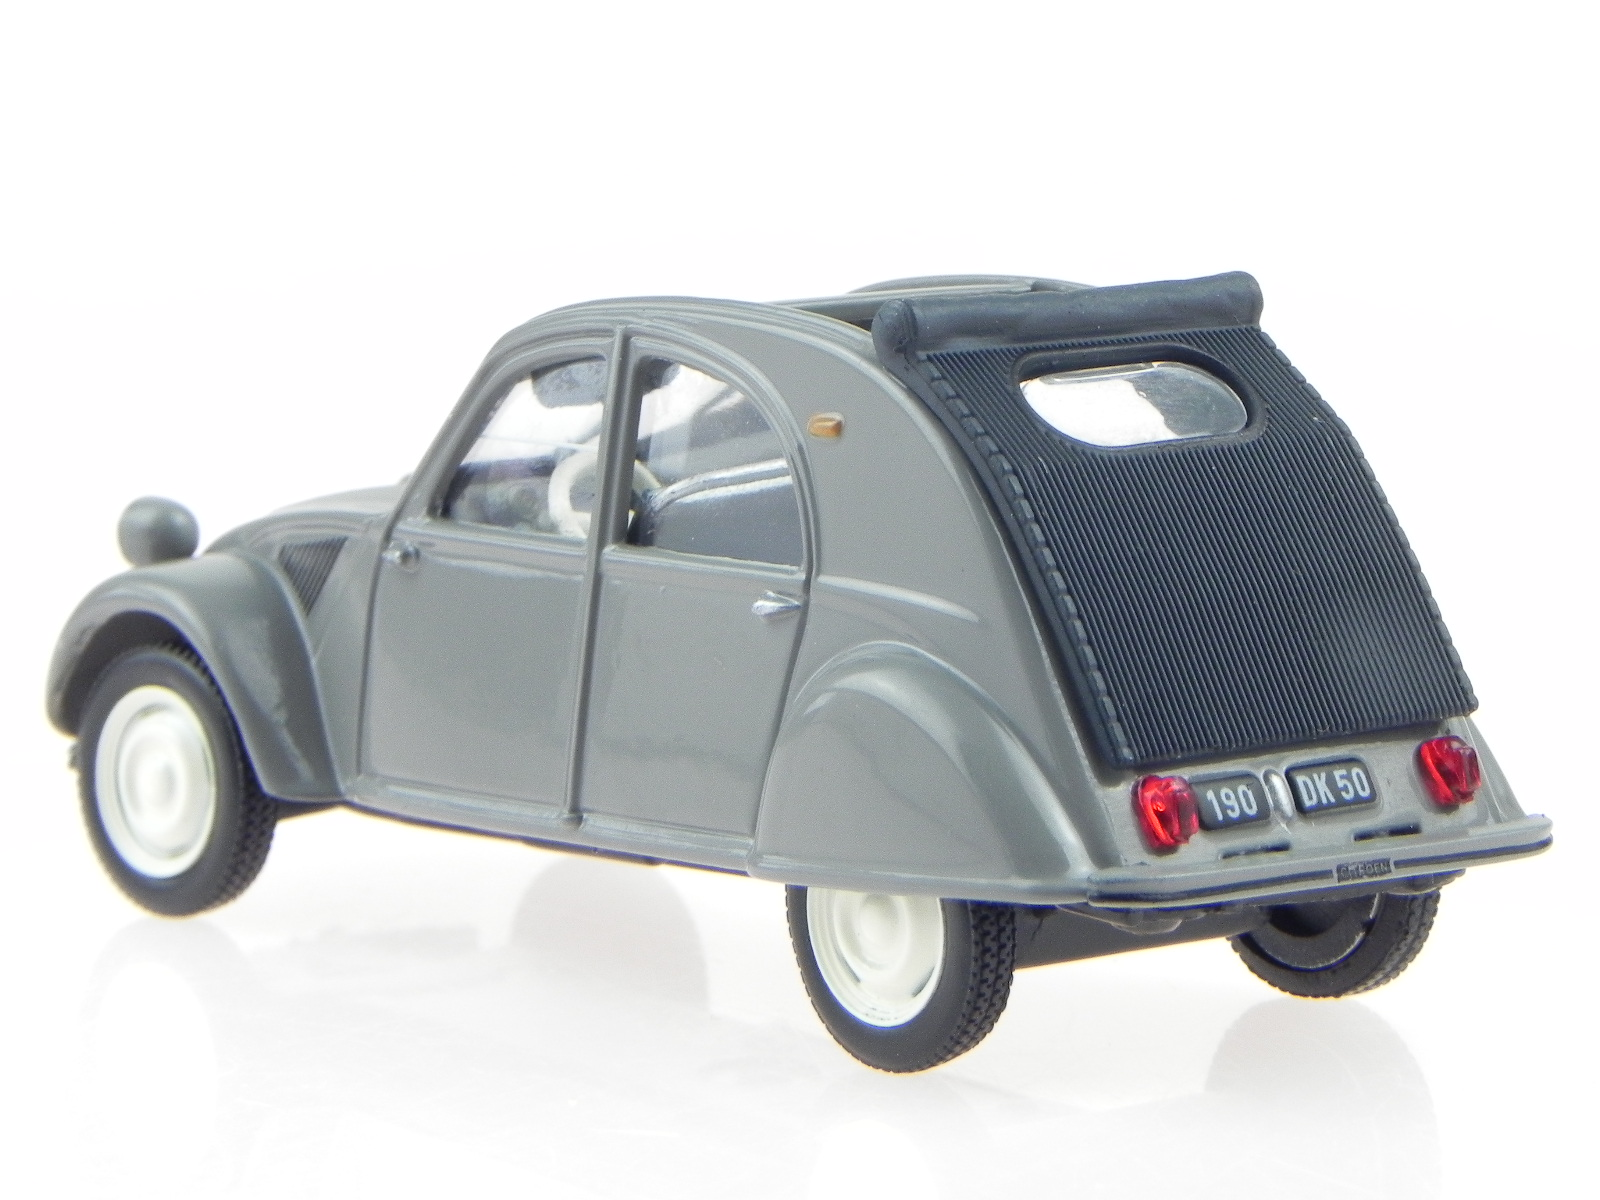 citroen 2cv 2 cv ente typ az grey modelcar atlas 1 43. Black Bedroom Furniture Sets. Home Design Ideas